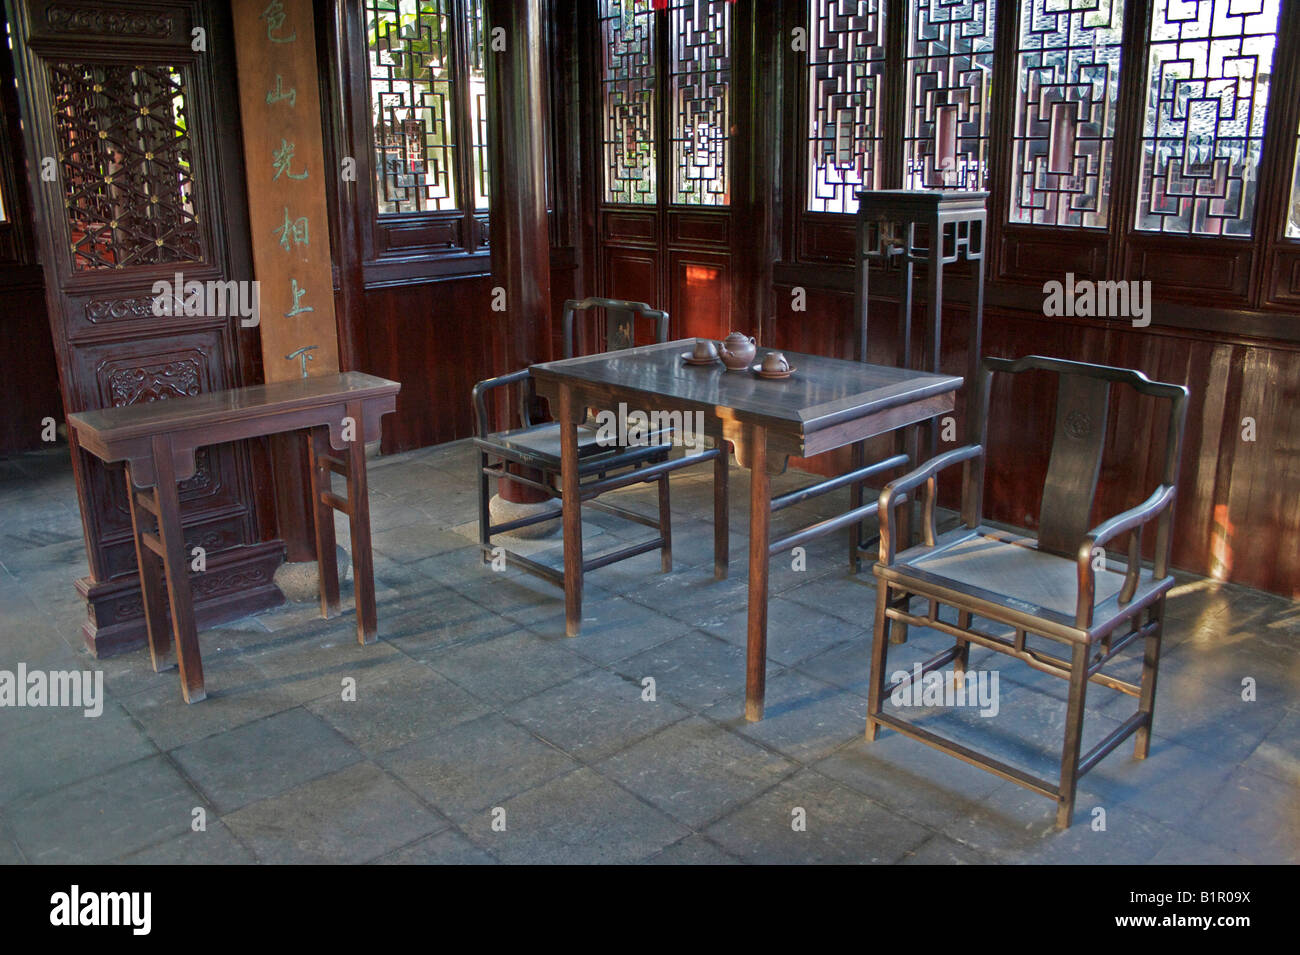 Ancient Chinese Ming Furniture In The Yu Gardens Shanghai China